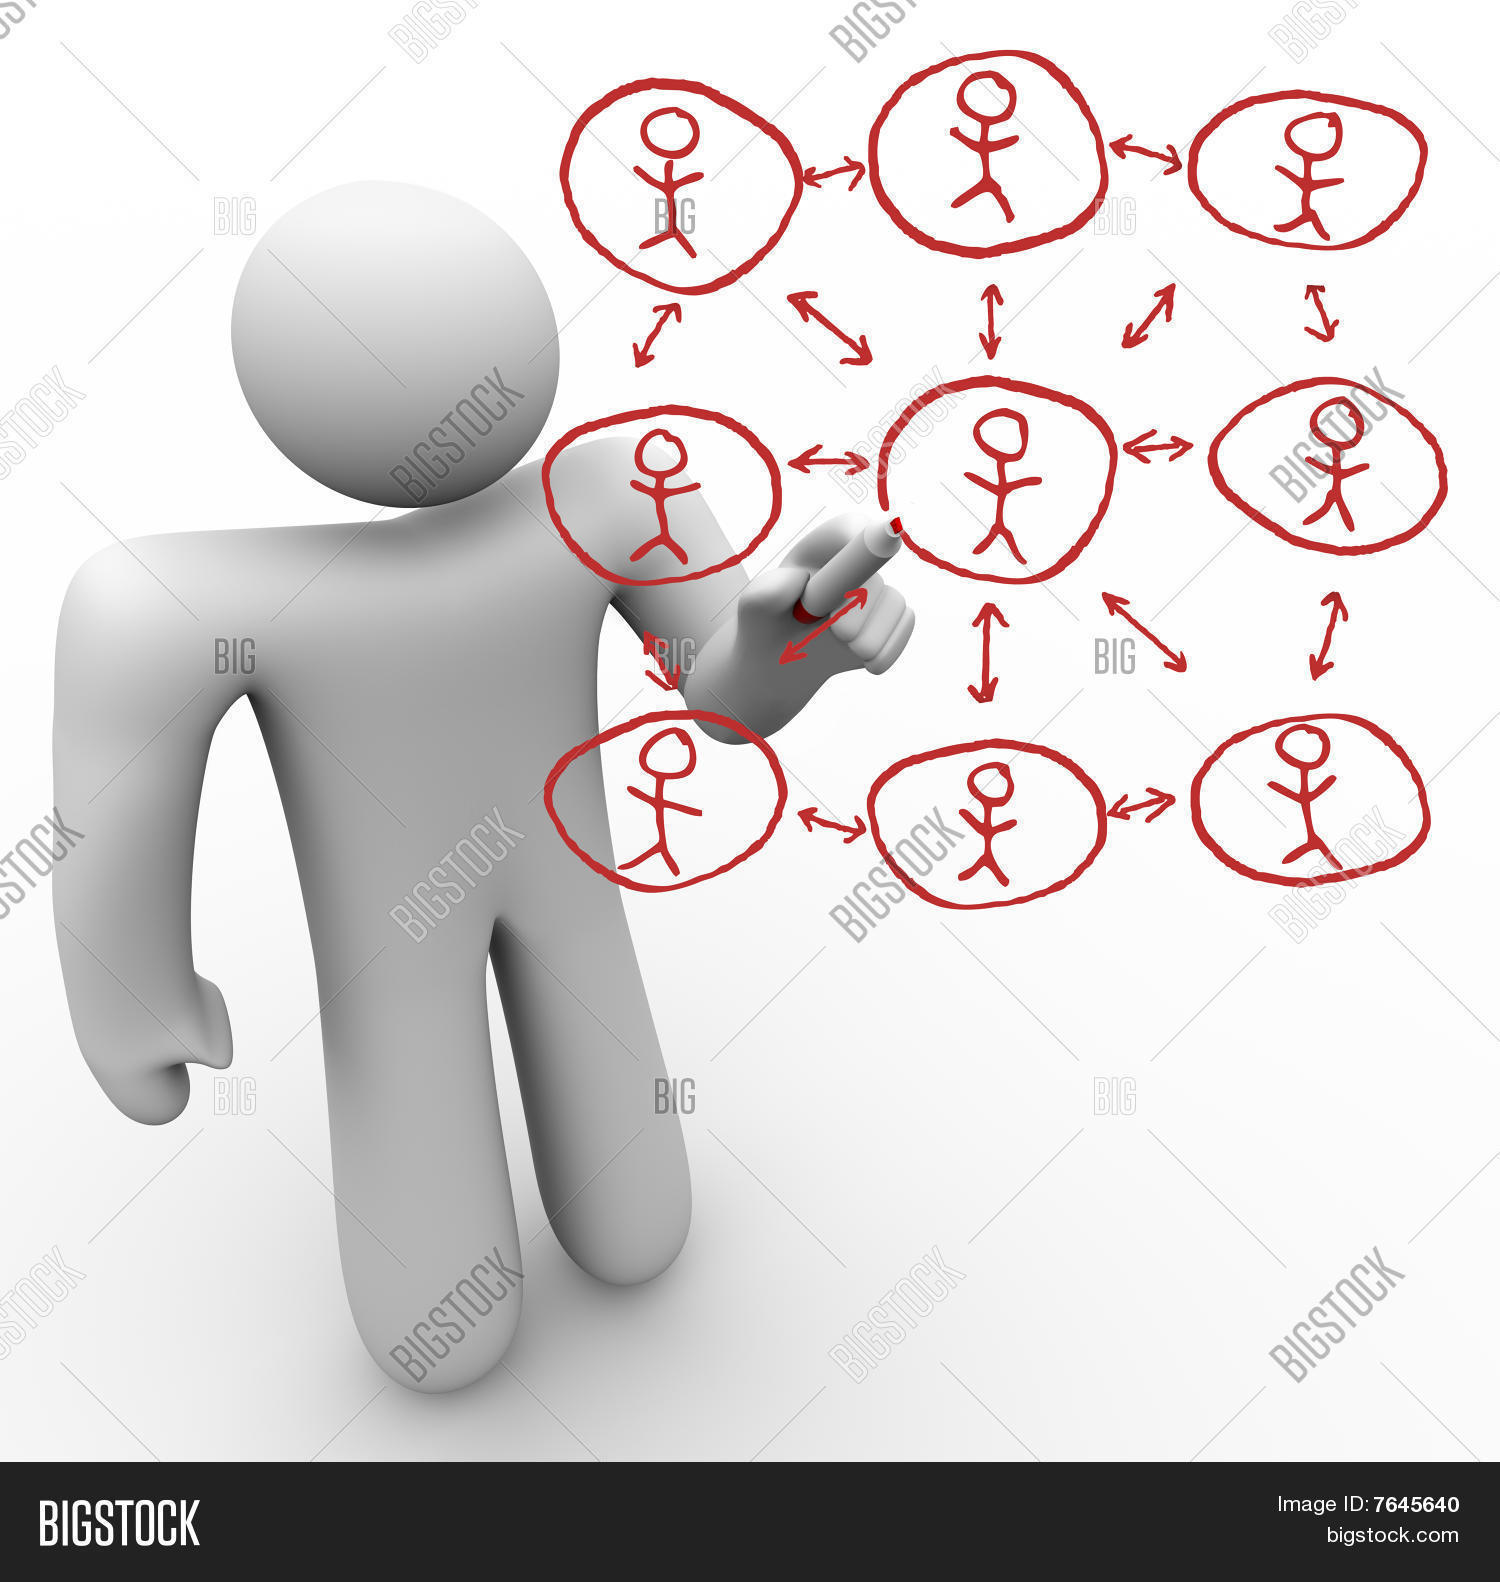 arrows,audience,board,circles,communicate,communication,contacts,demonstrate,diagram,draw,drawing,dry,erase,flowchart,friends,glass,goals,group,growth,inform,information,informing,inspiration,inspirational,inspire,lead,leader,leadership,leading,man,marker,marketing,mass,motivate,motivation,motivational,mouth,multiply,network,networking,organization,pen,people,person,plan,planning,present,presentation,social,social network,social networking,social networks,spread,spreading,spread the word,succeed,success,successful,team,teamwork,text,viral,vision,word of mouth,words,writer,writing